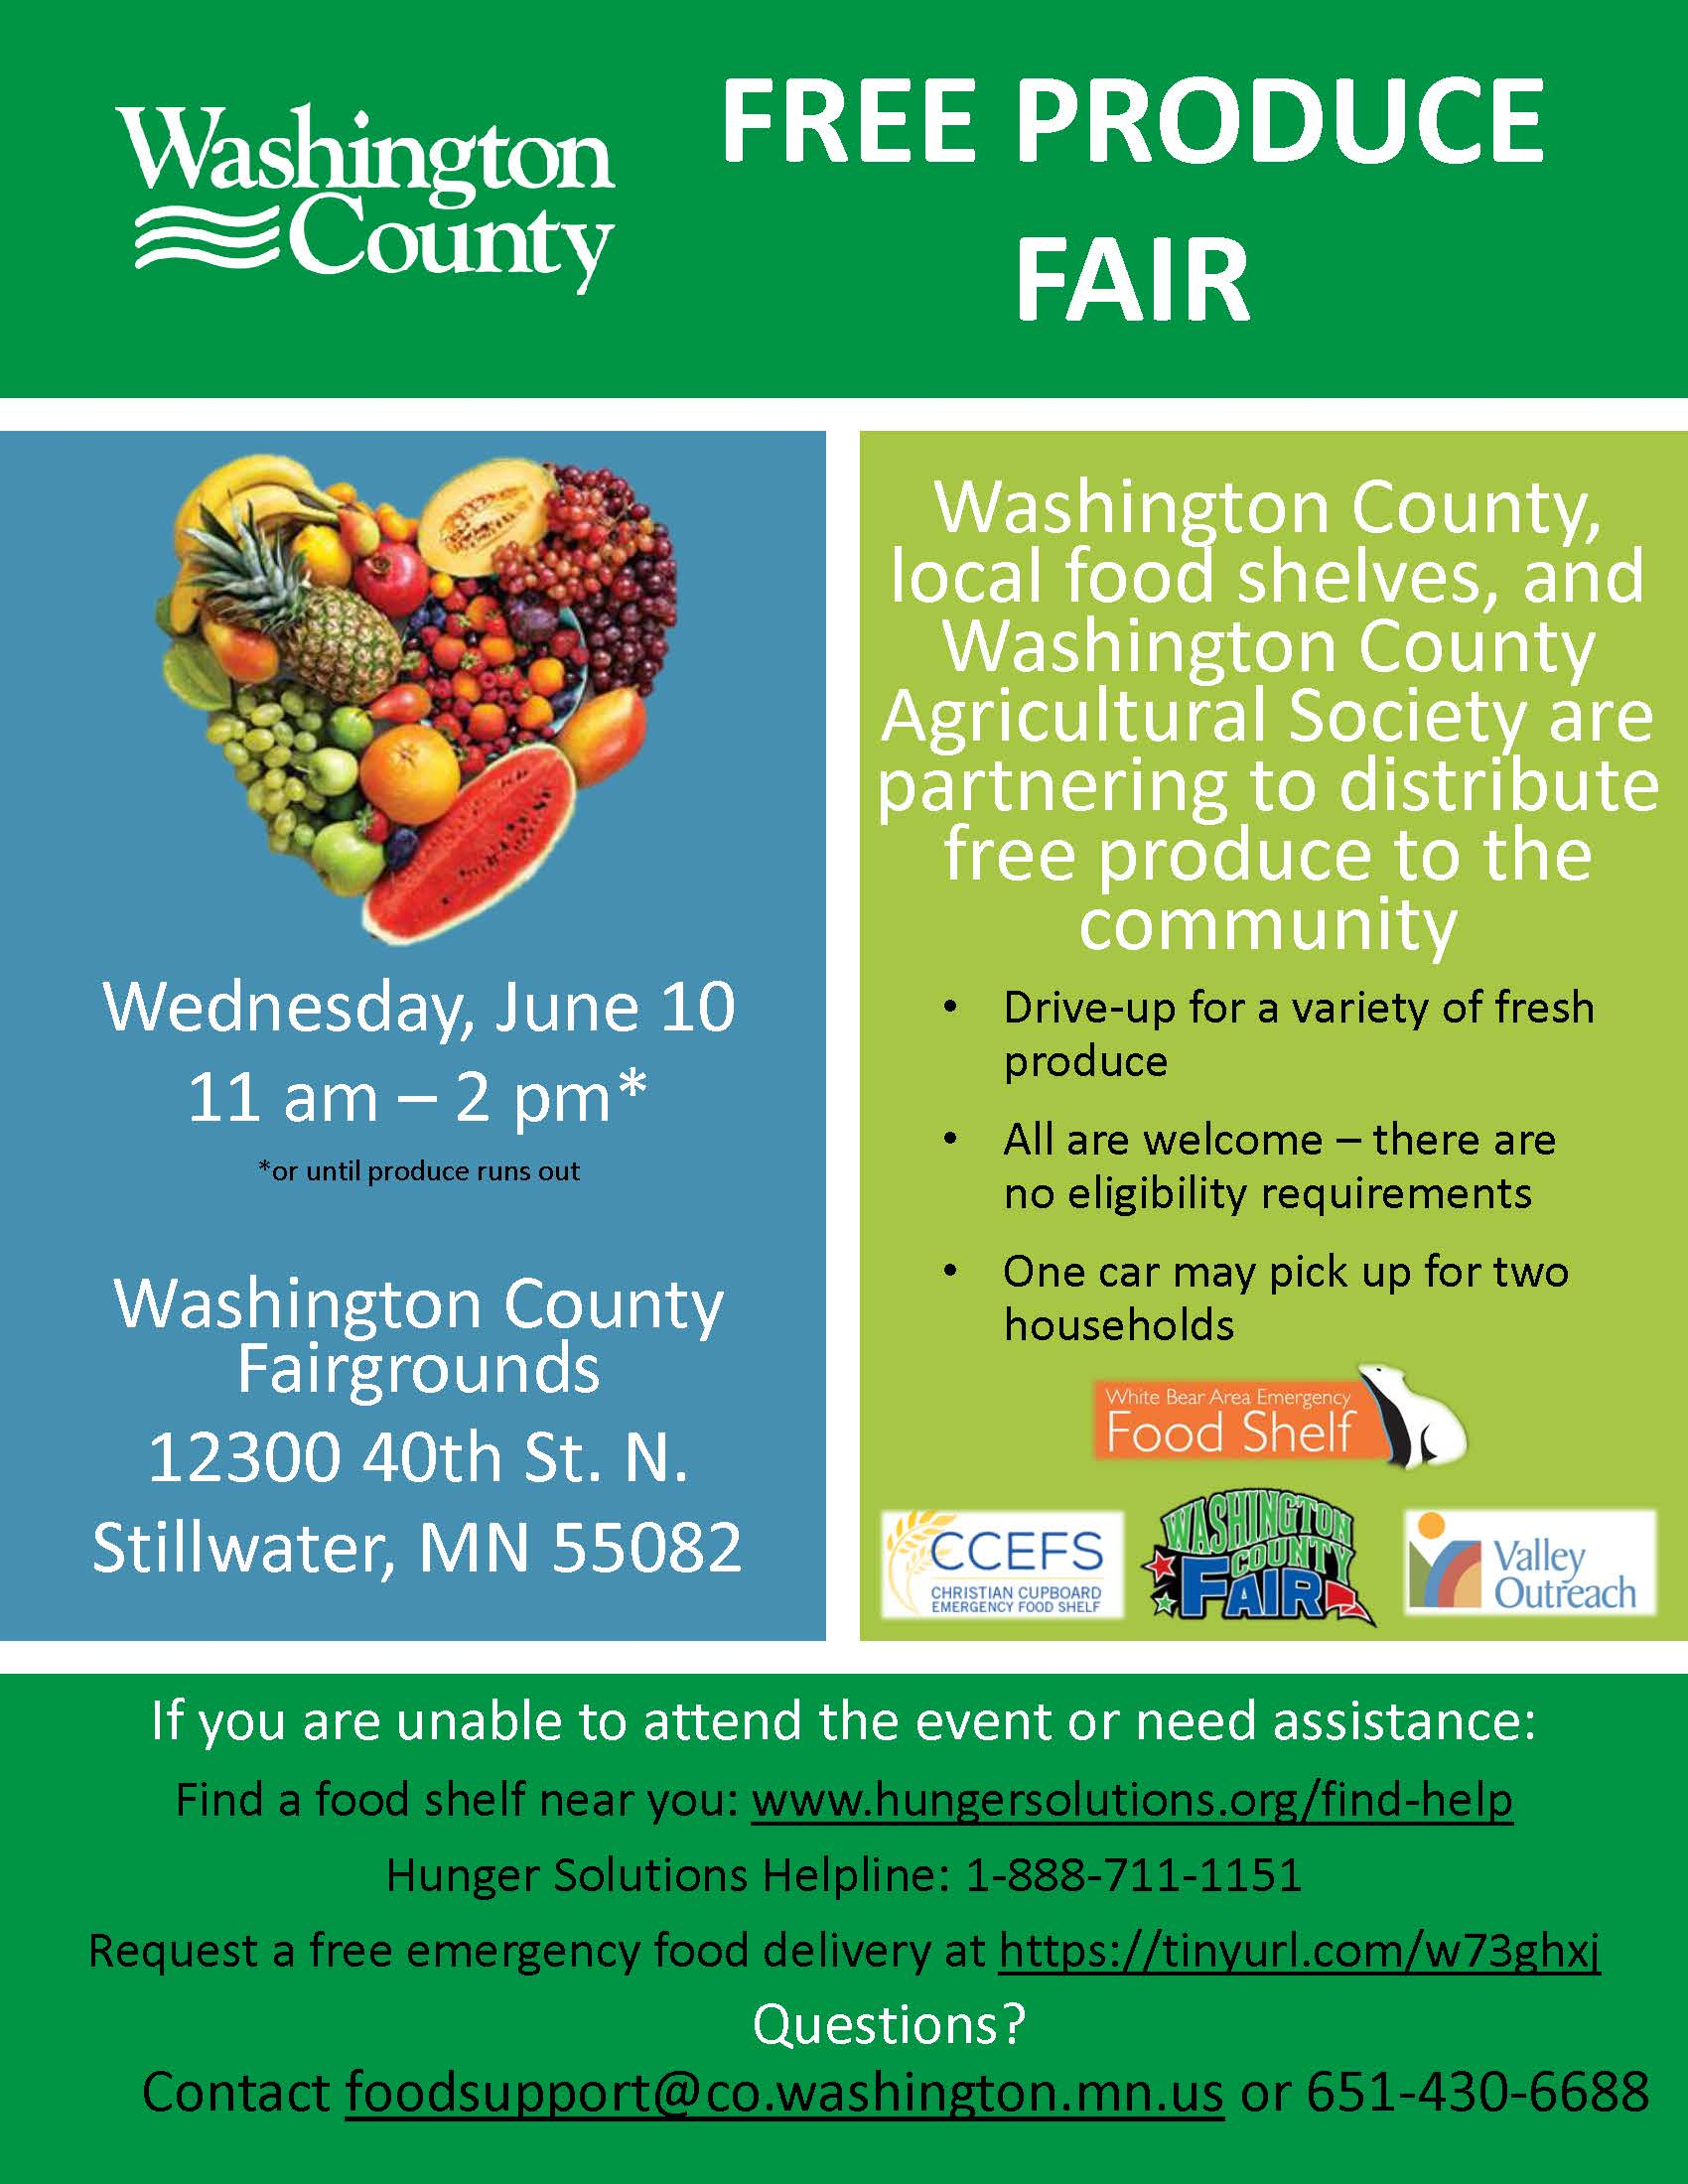 Washington County Free Produce Fair Flyer (IMAGE)